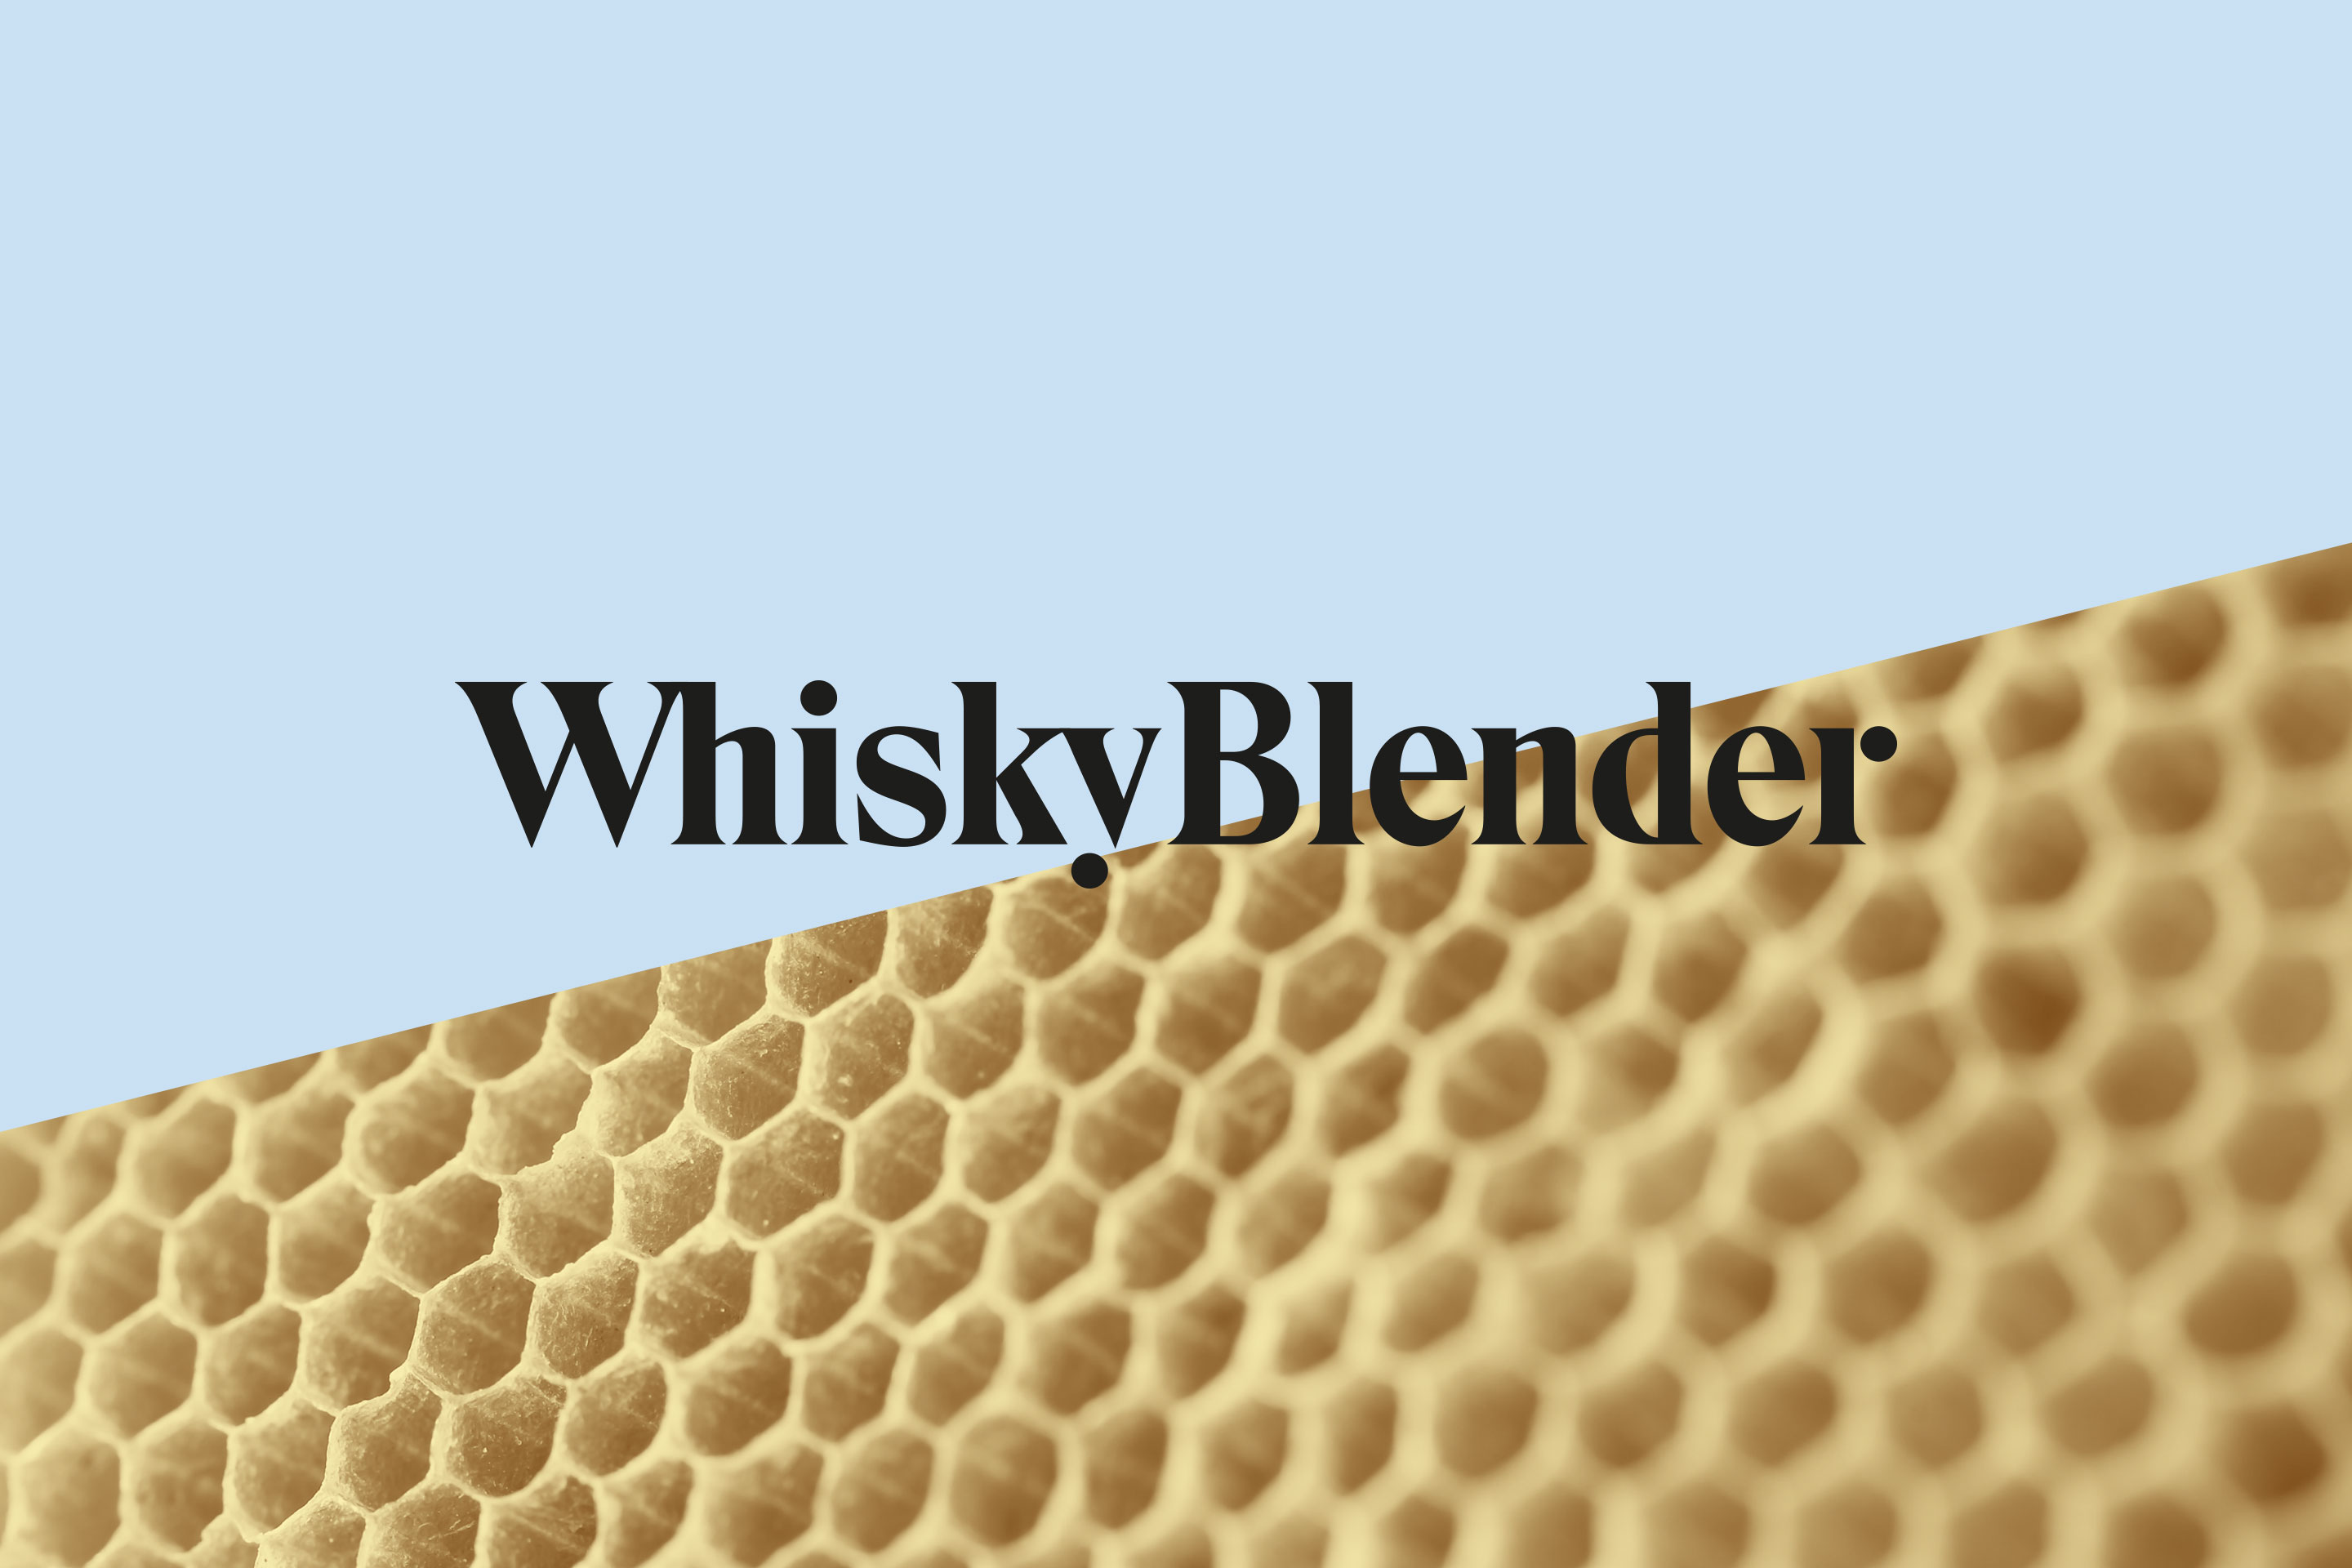 Whisky Blender Branding